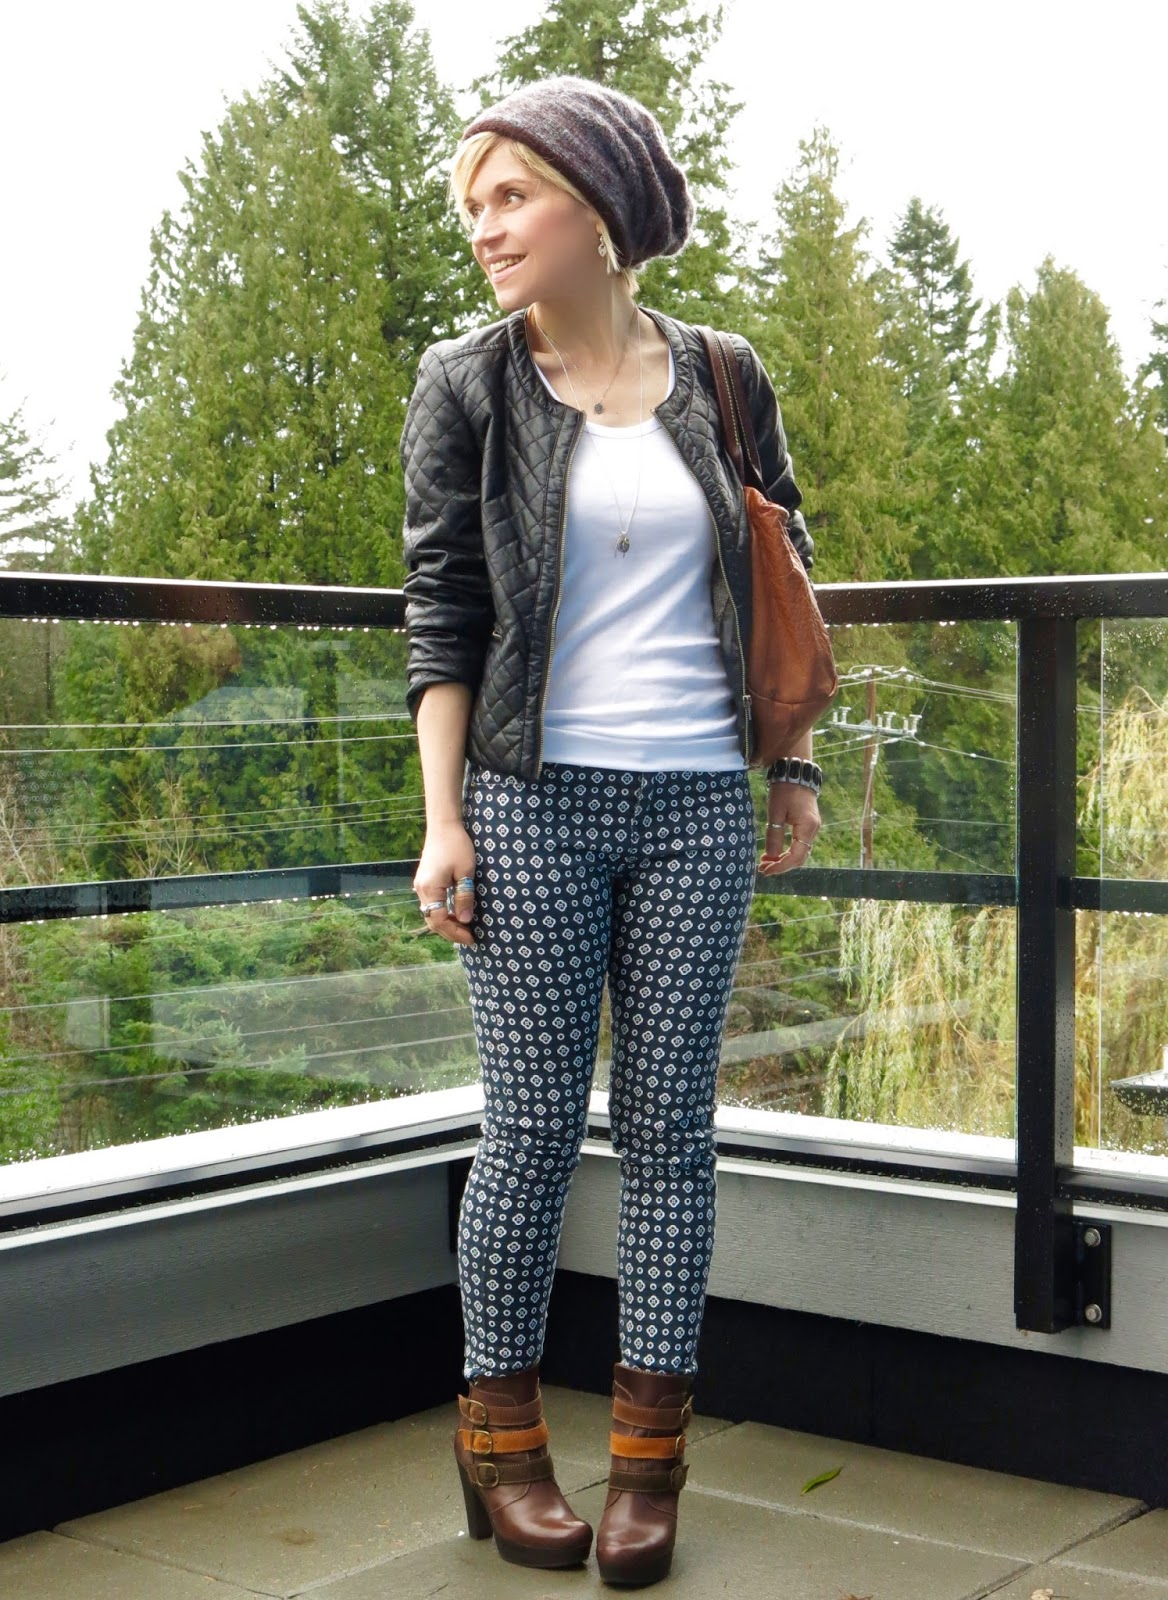 styling printed skinny pants with a white tank, quilted faux-leather jacket, platform booties, and a woolen beanie